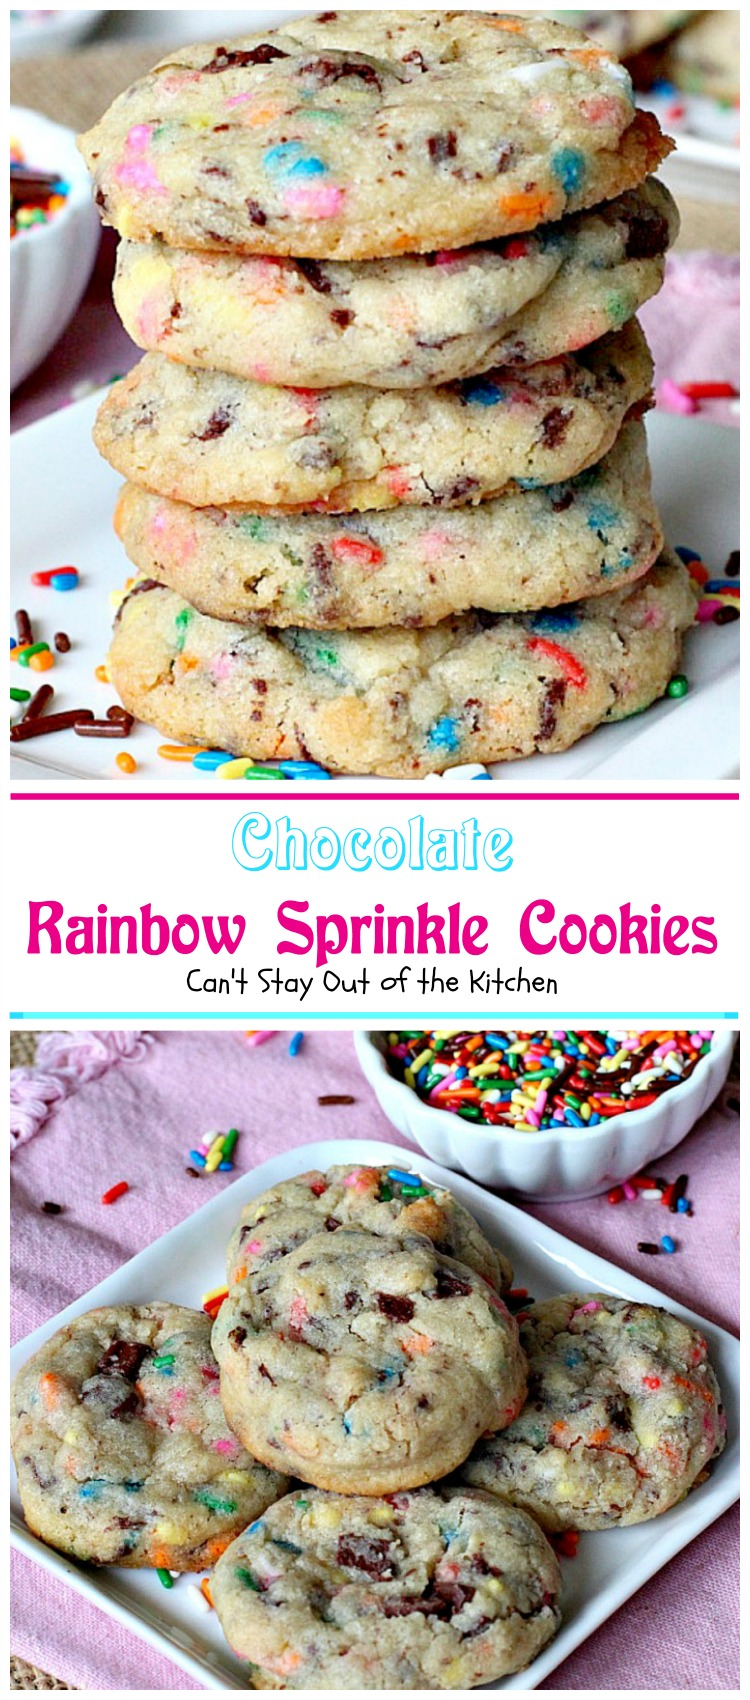 Chocolate Rainbow Sprinkle Cookies - Can't Stay Out of the Kitchen